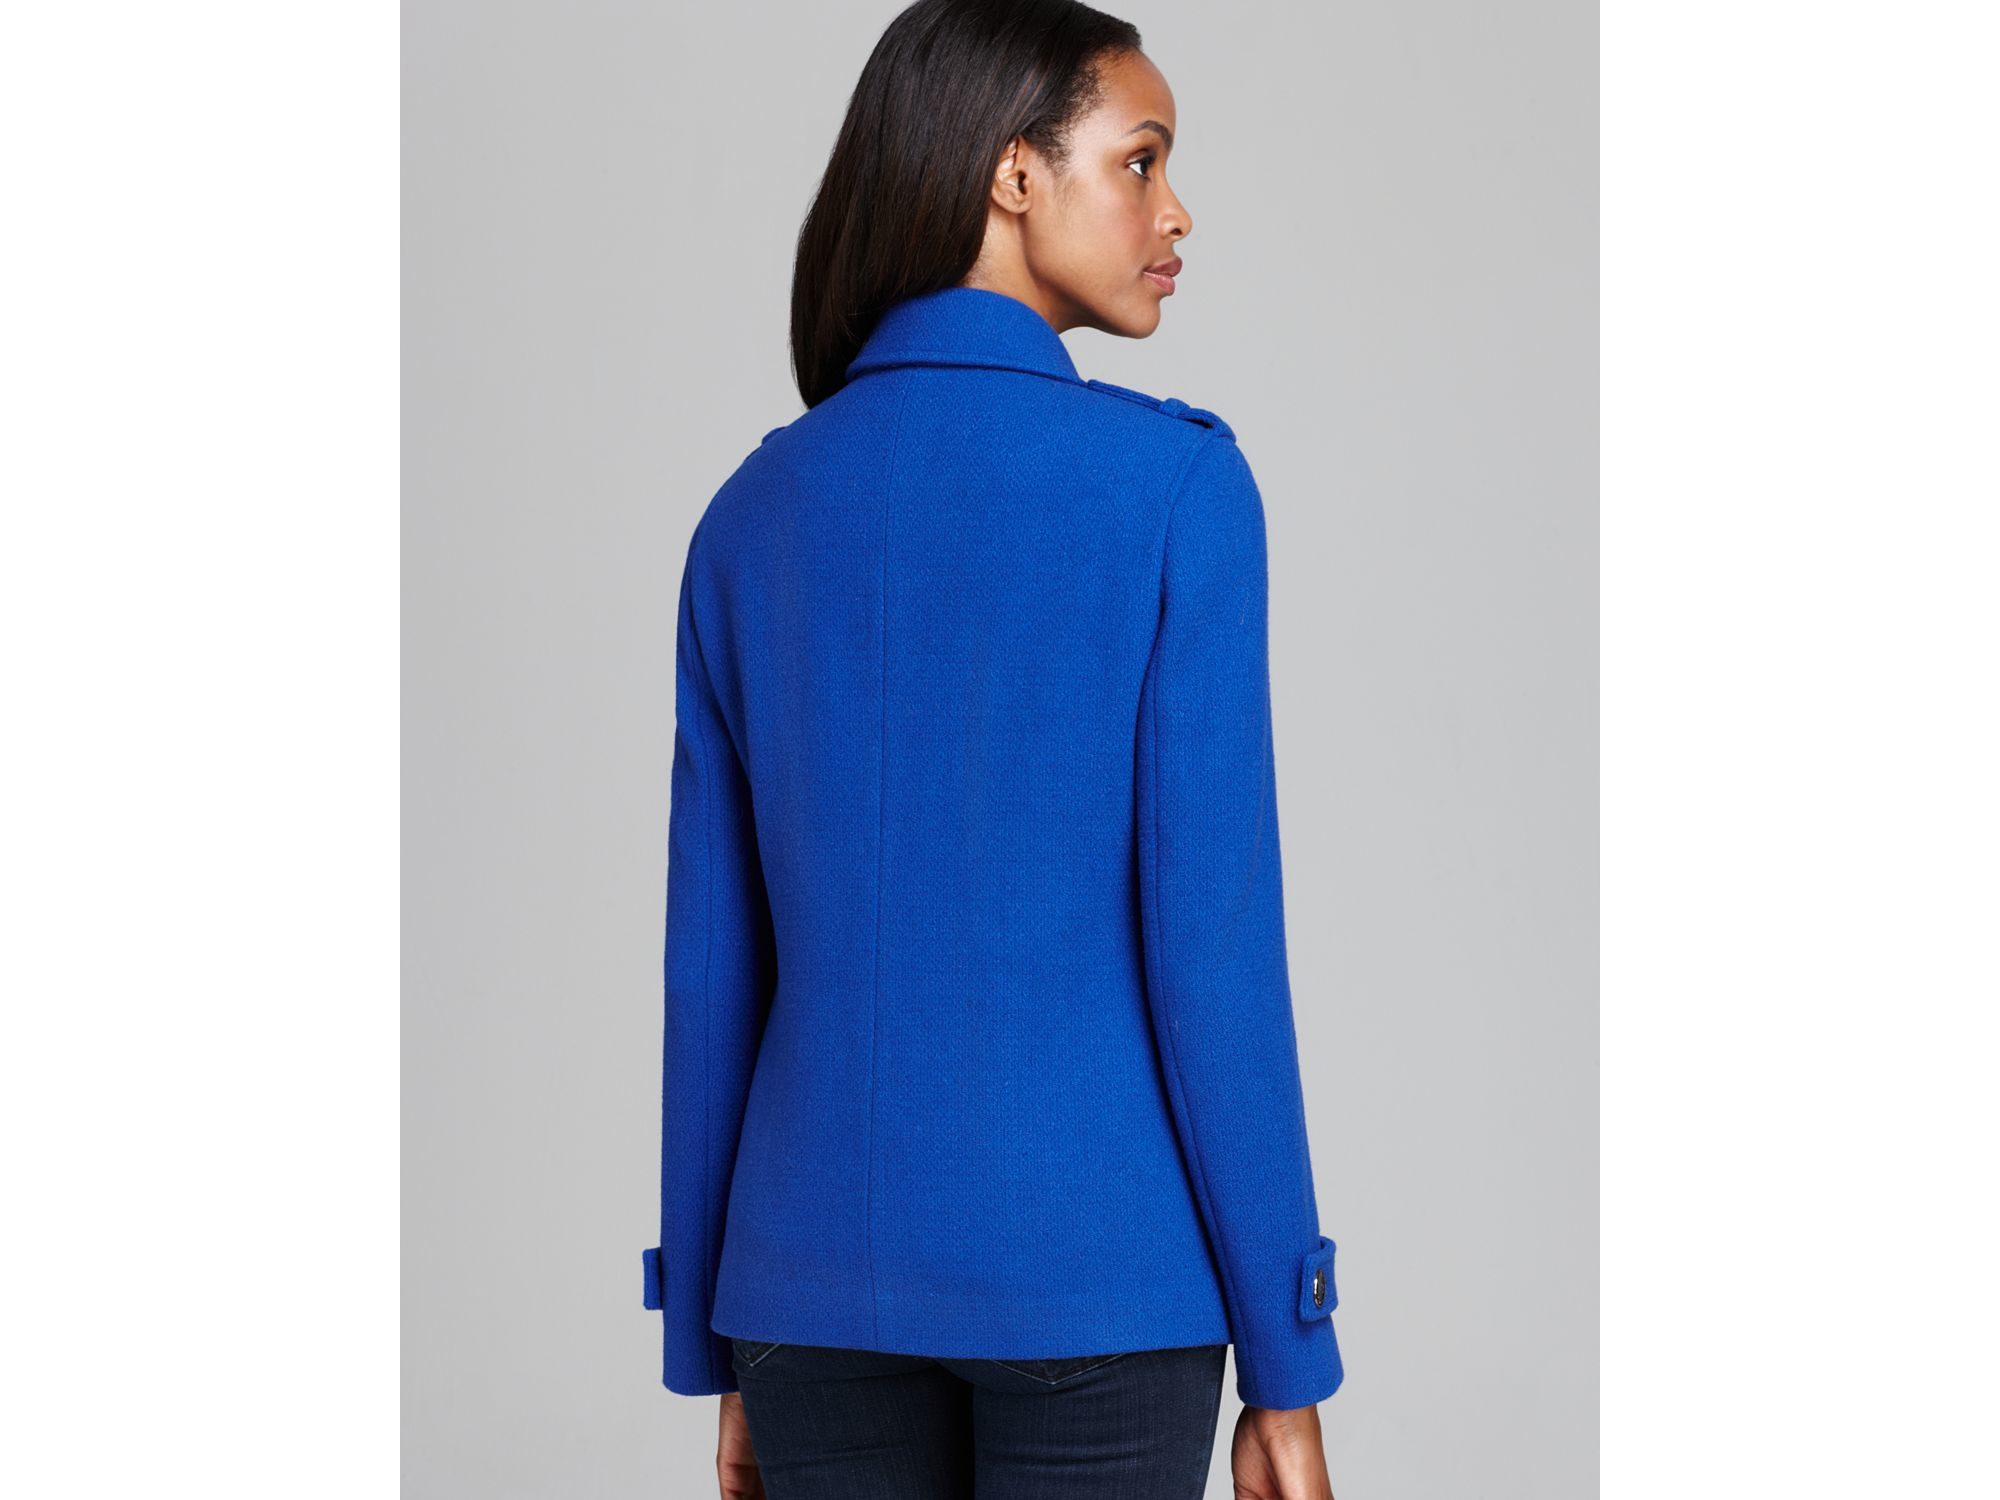 Blue Pea Coat With Red Trim - Tradingbasis